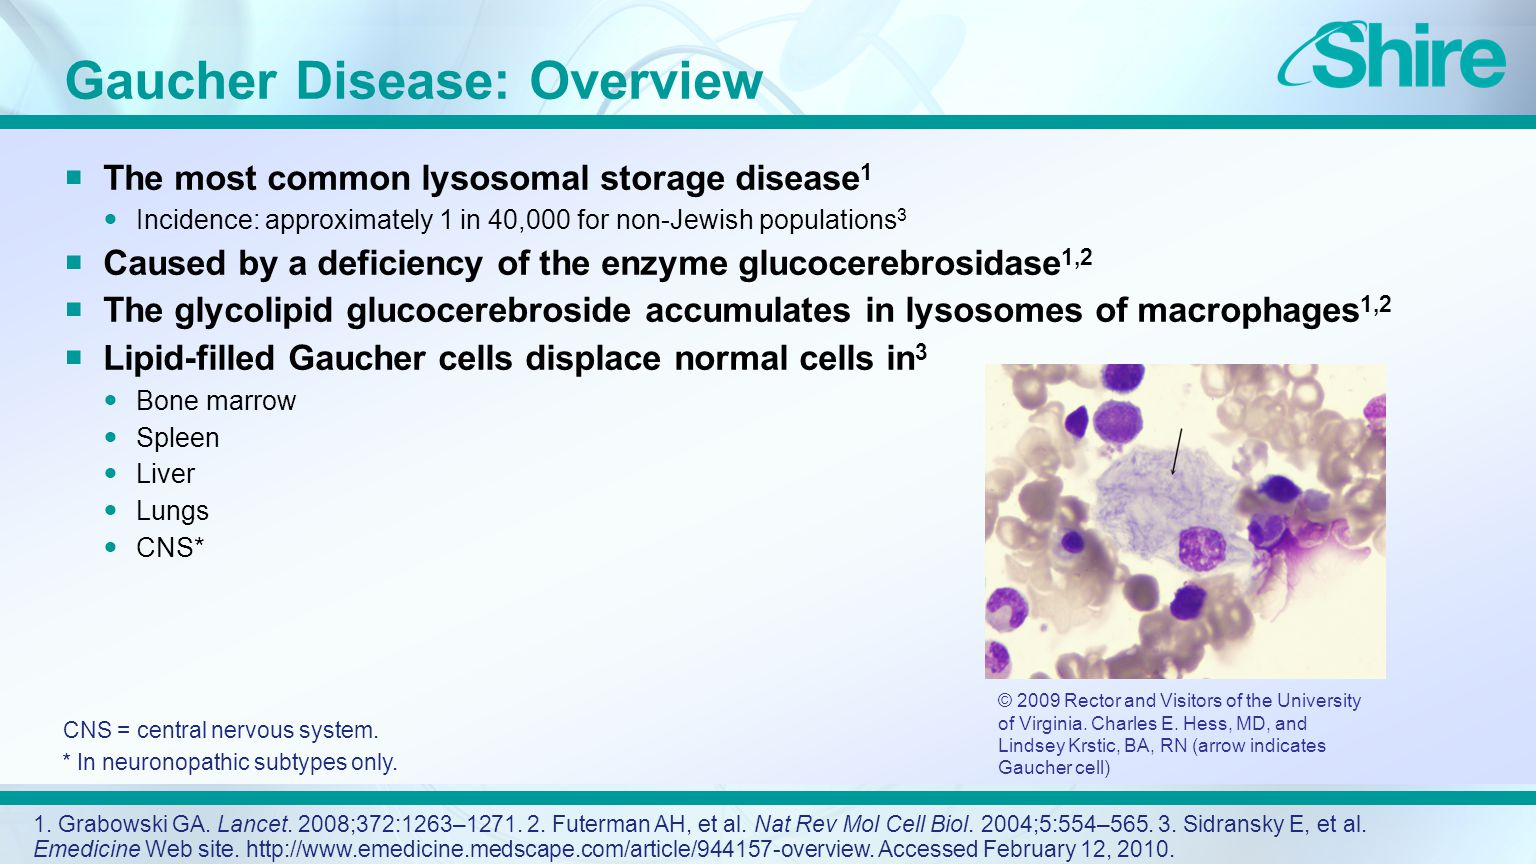 Gaucher Disease: Overview  The most common lysosomal storage disease 1 Incidence: approximately 1 in 40,000 for non-Jewish populations 3  Caused by a deficiency of the enzyme glucocerebrosidase 1,2  The glycolipid glucocerebroside accumulates in lysosomes of macrophages 1,2  Lipid-filled Gaucher cells displace normal cells in 3 Bone marrow Spleen Liver Lungs CNS* * In neuronopathic subtypes only.